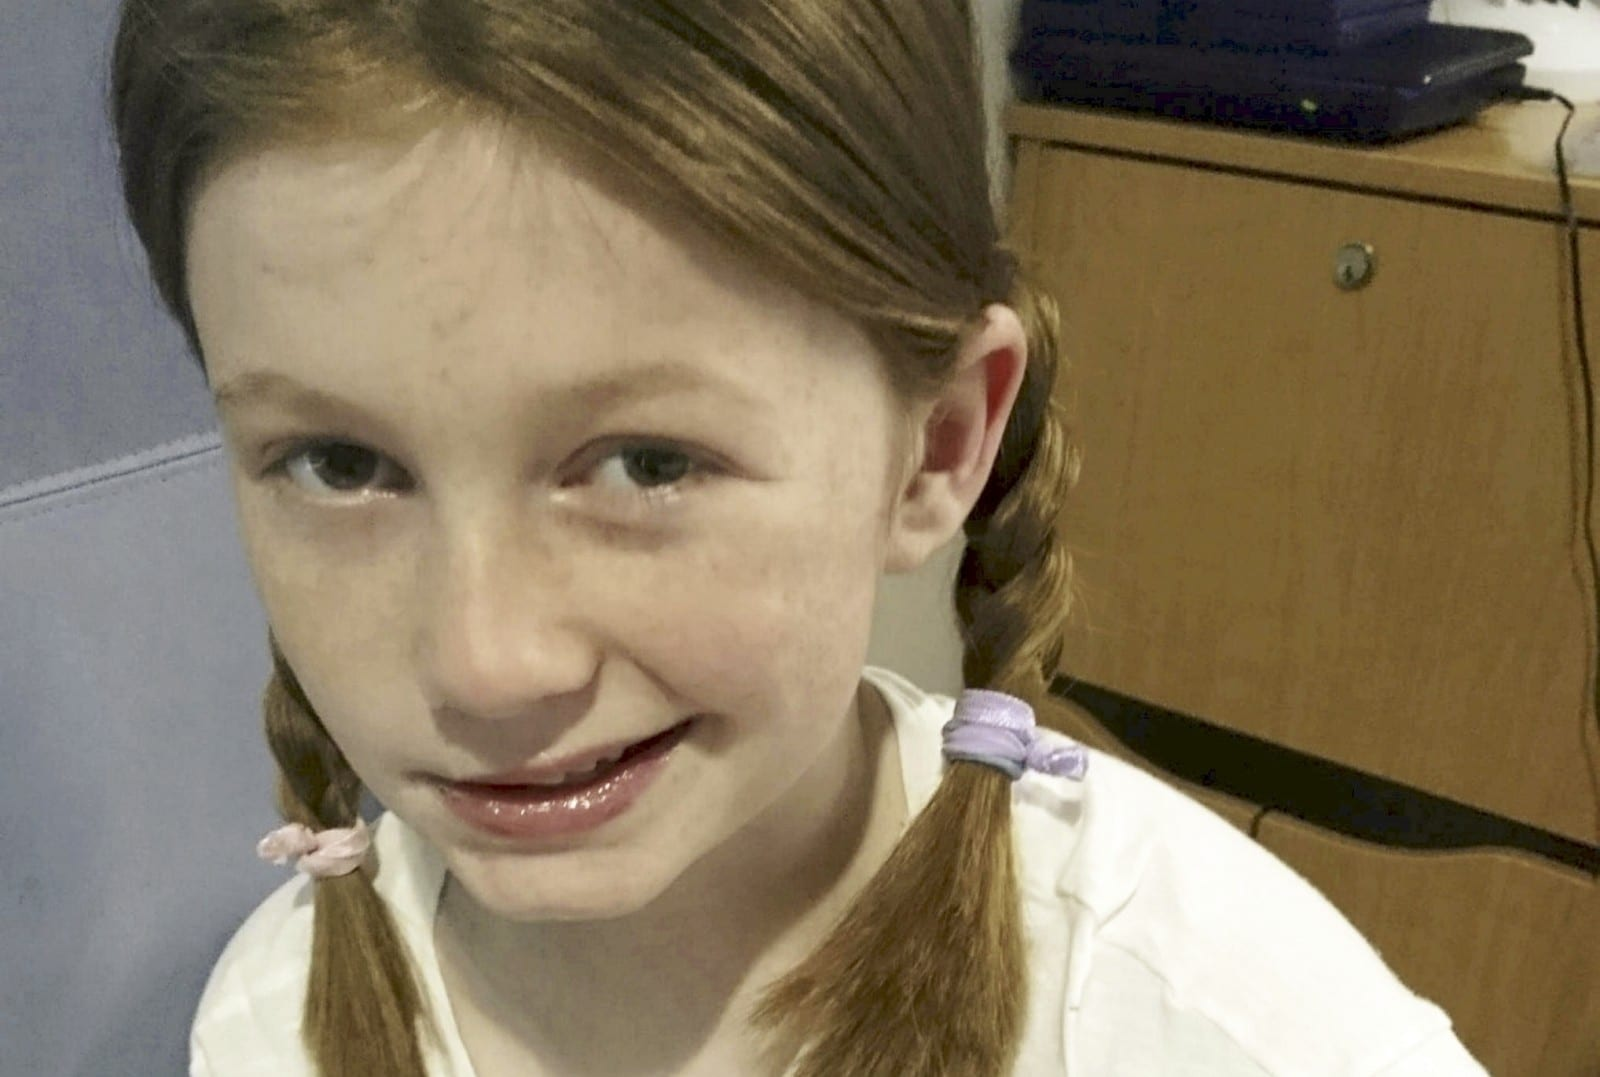 Mum's Horror As 'Healthy' 10-Year-Old Daughter Has Massive Stroke